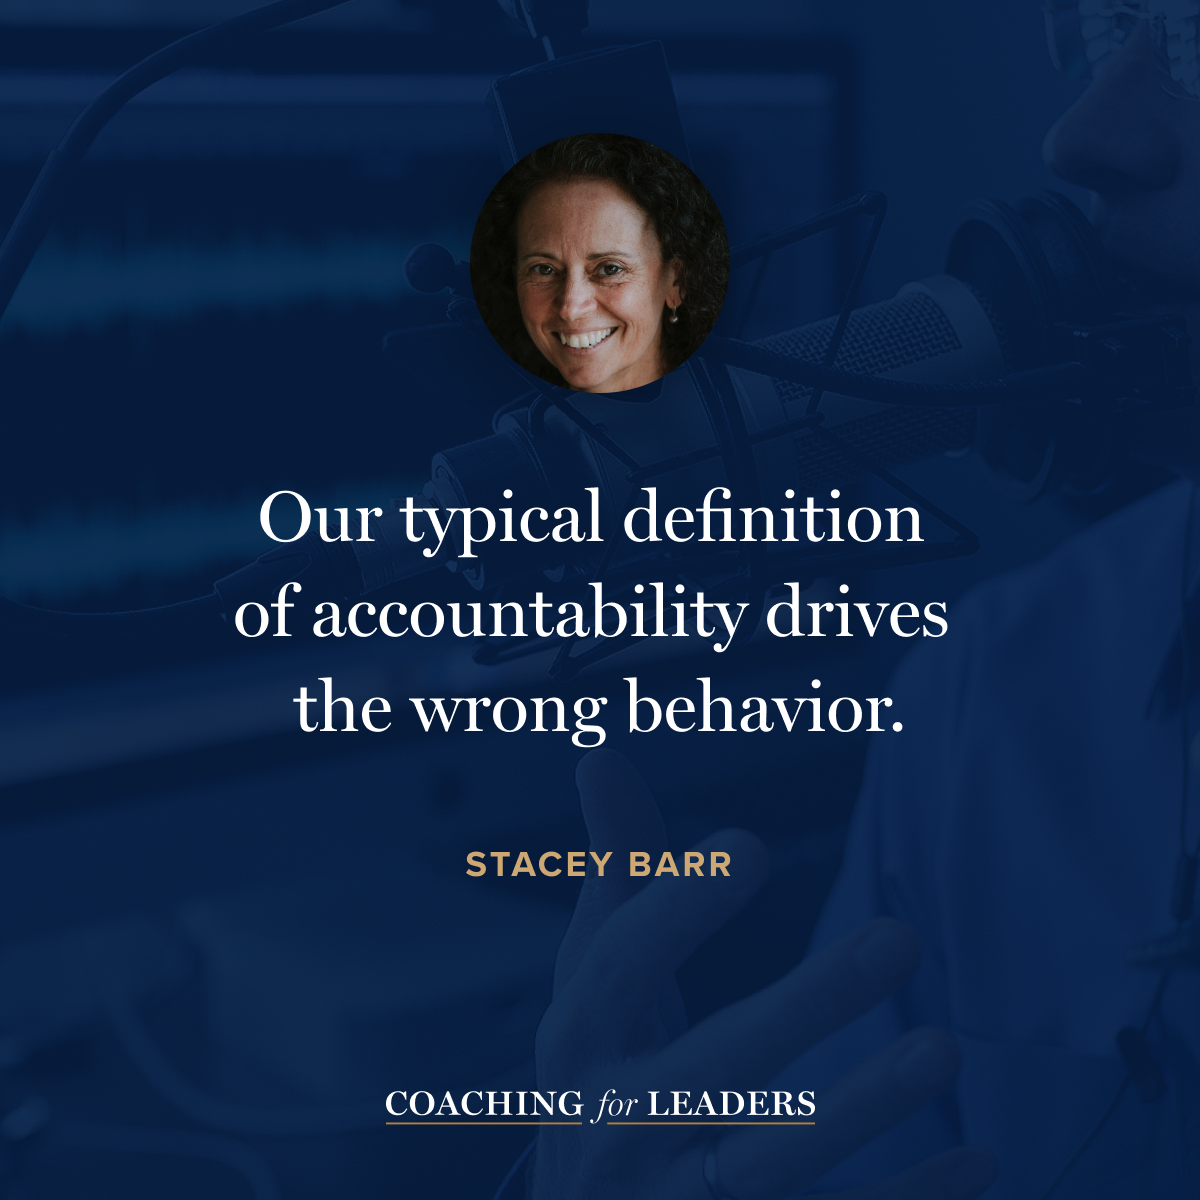 https://coachingforleaders.com/podcast/hold-people-accountable-stacey-barr